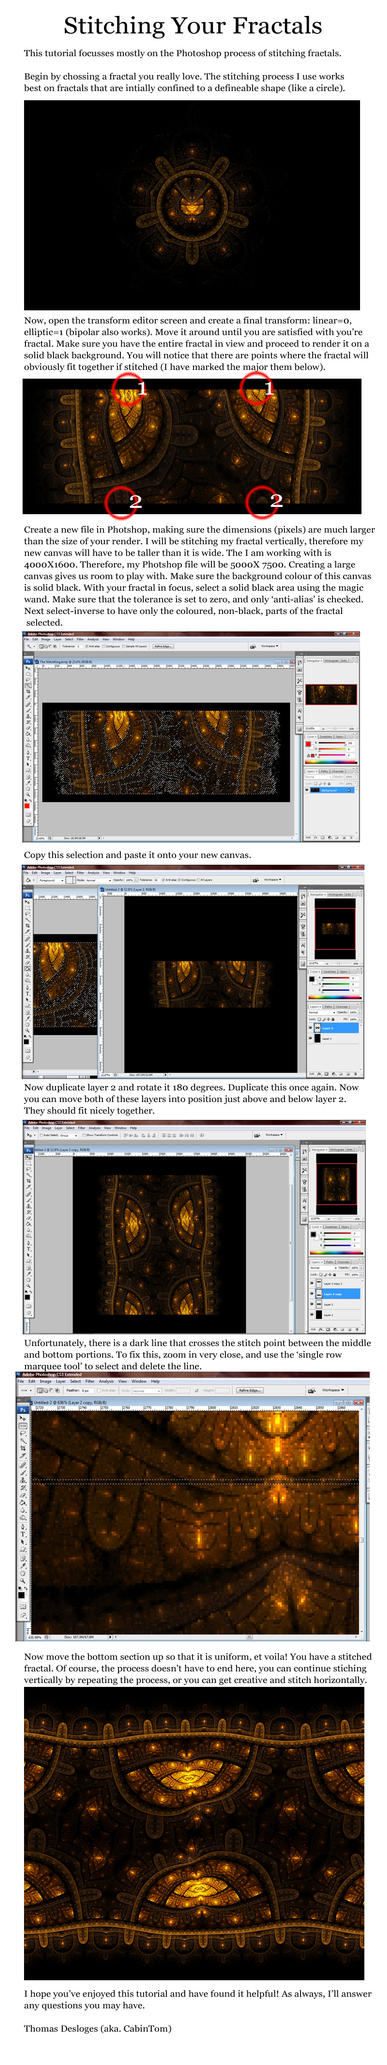 Fractal Stitching Tutorial by CabinTom